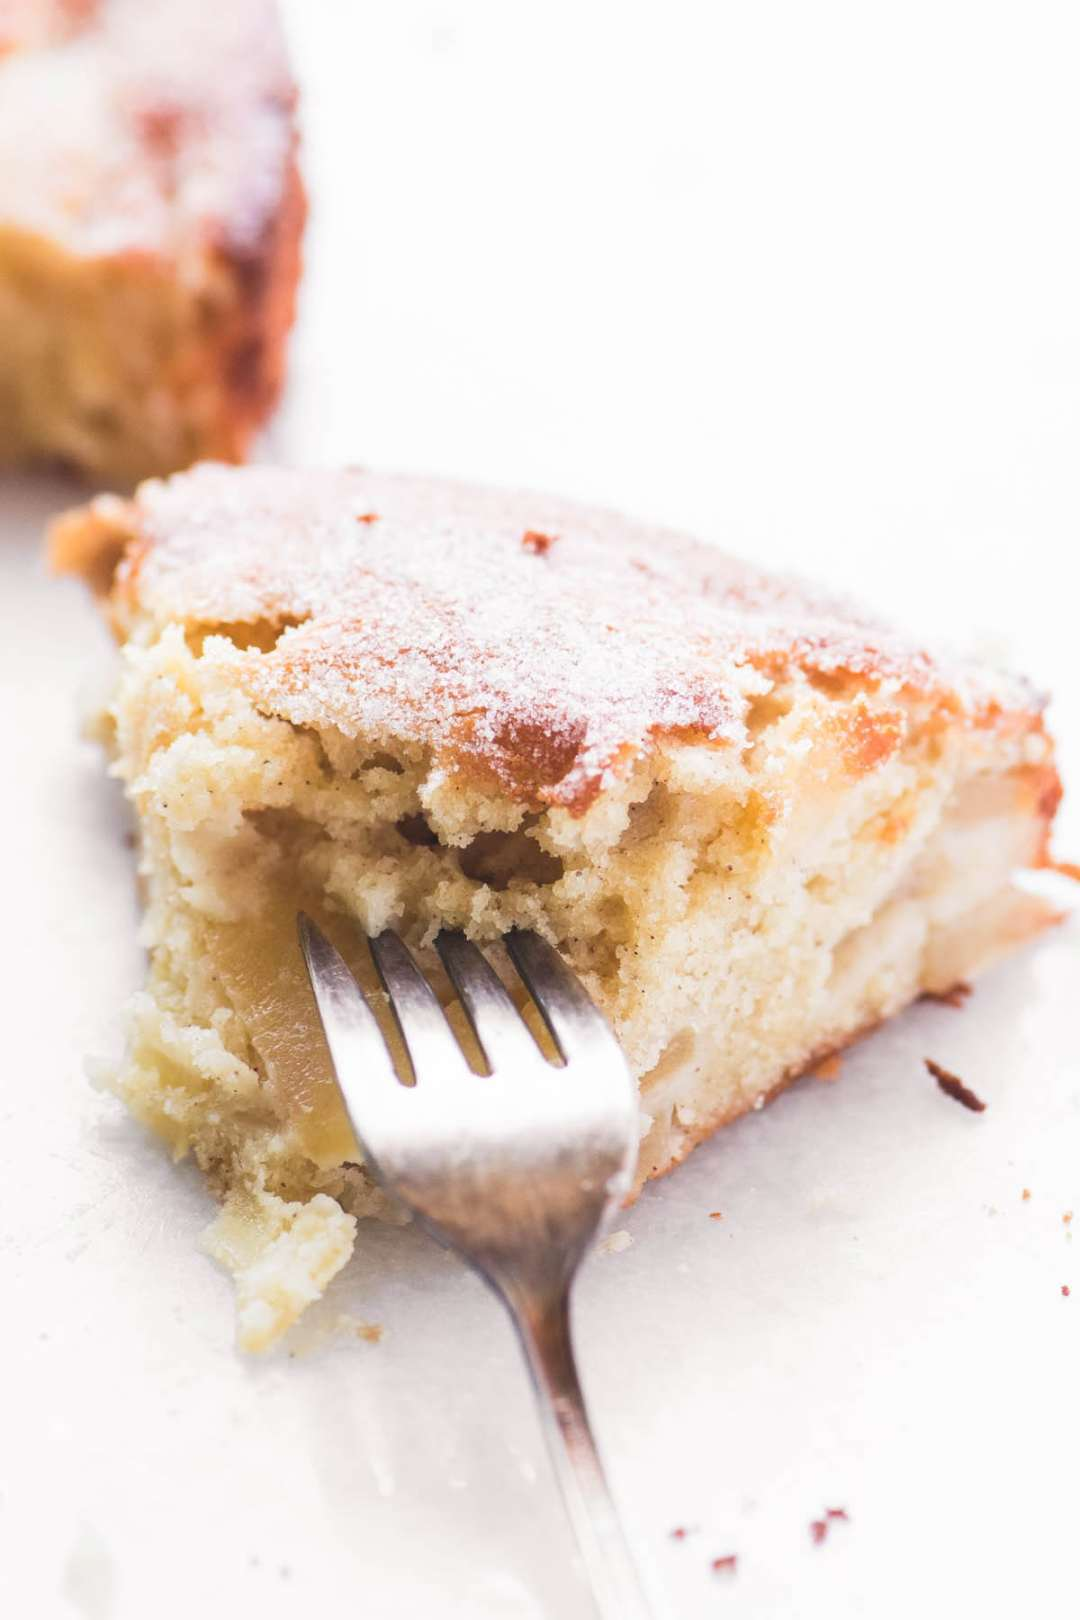 Taking a bite out of a slice of Dutch Apple Cake.